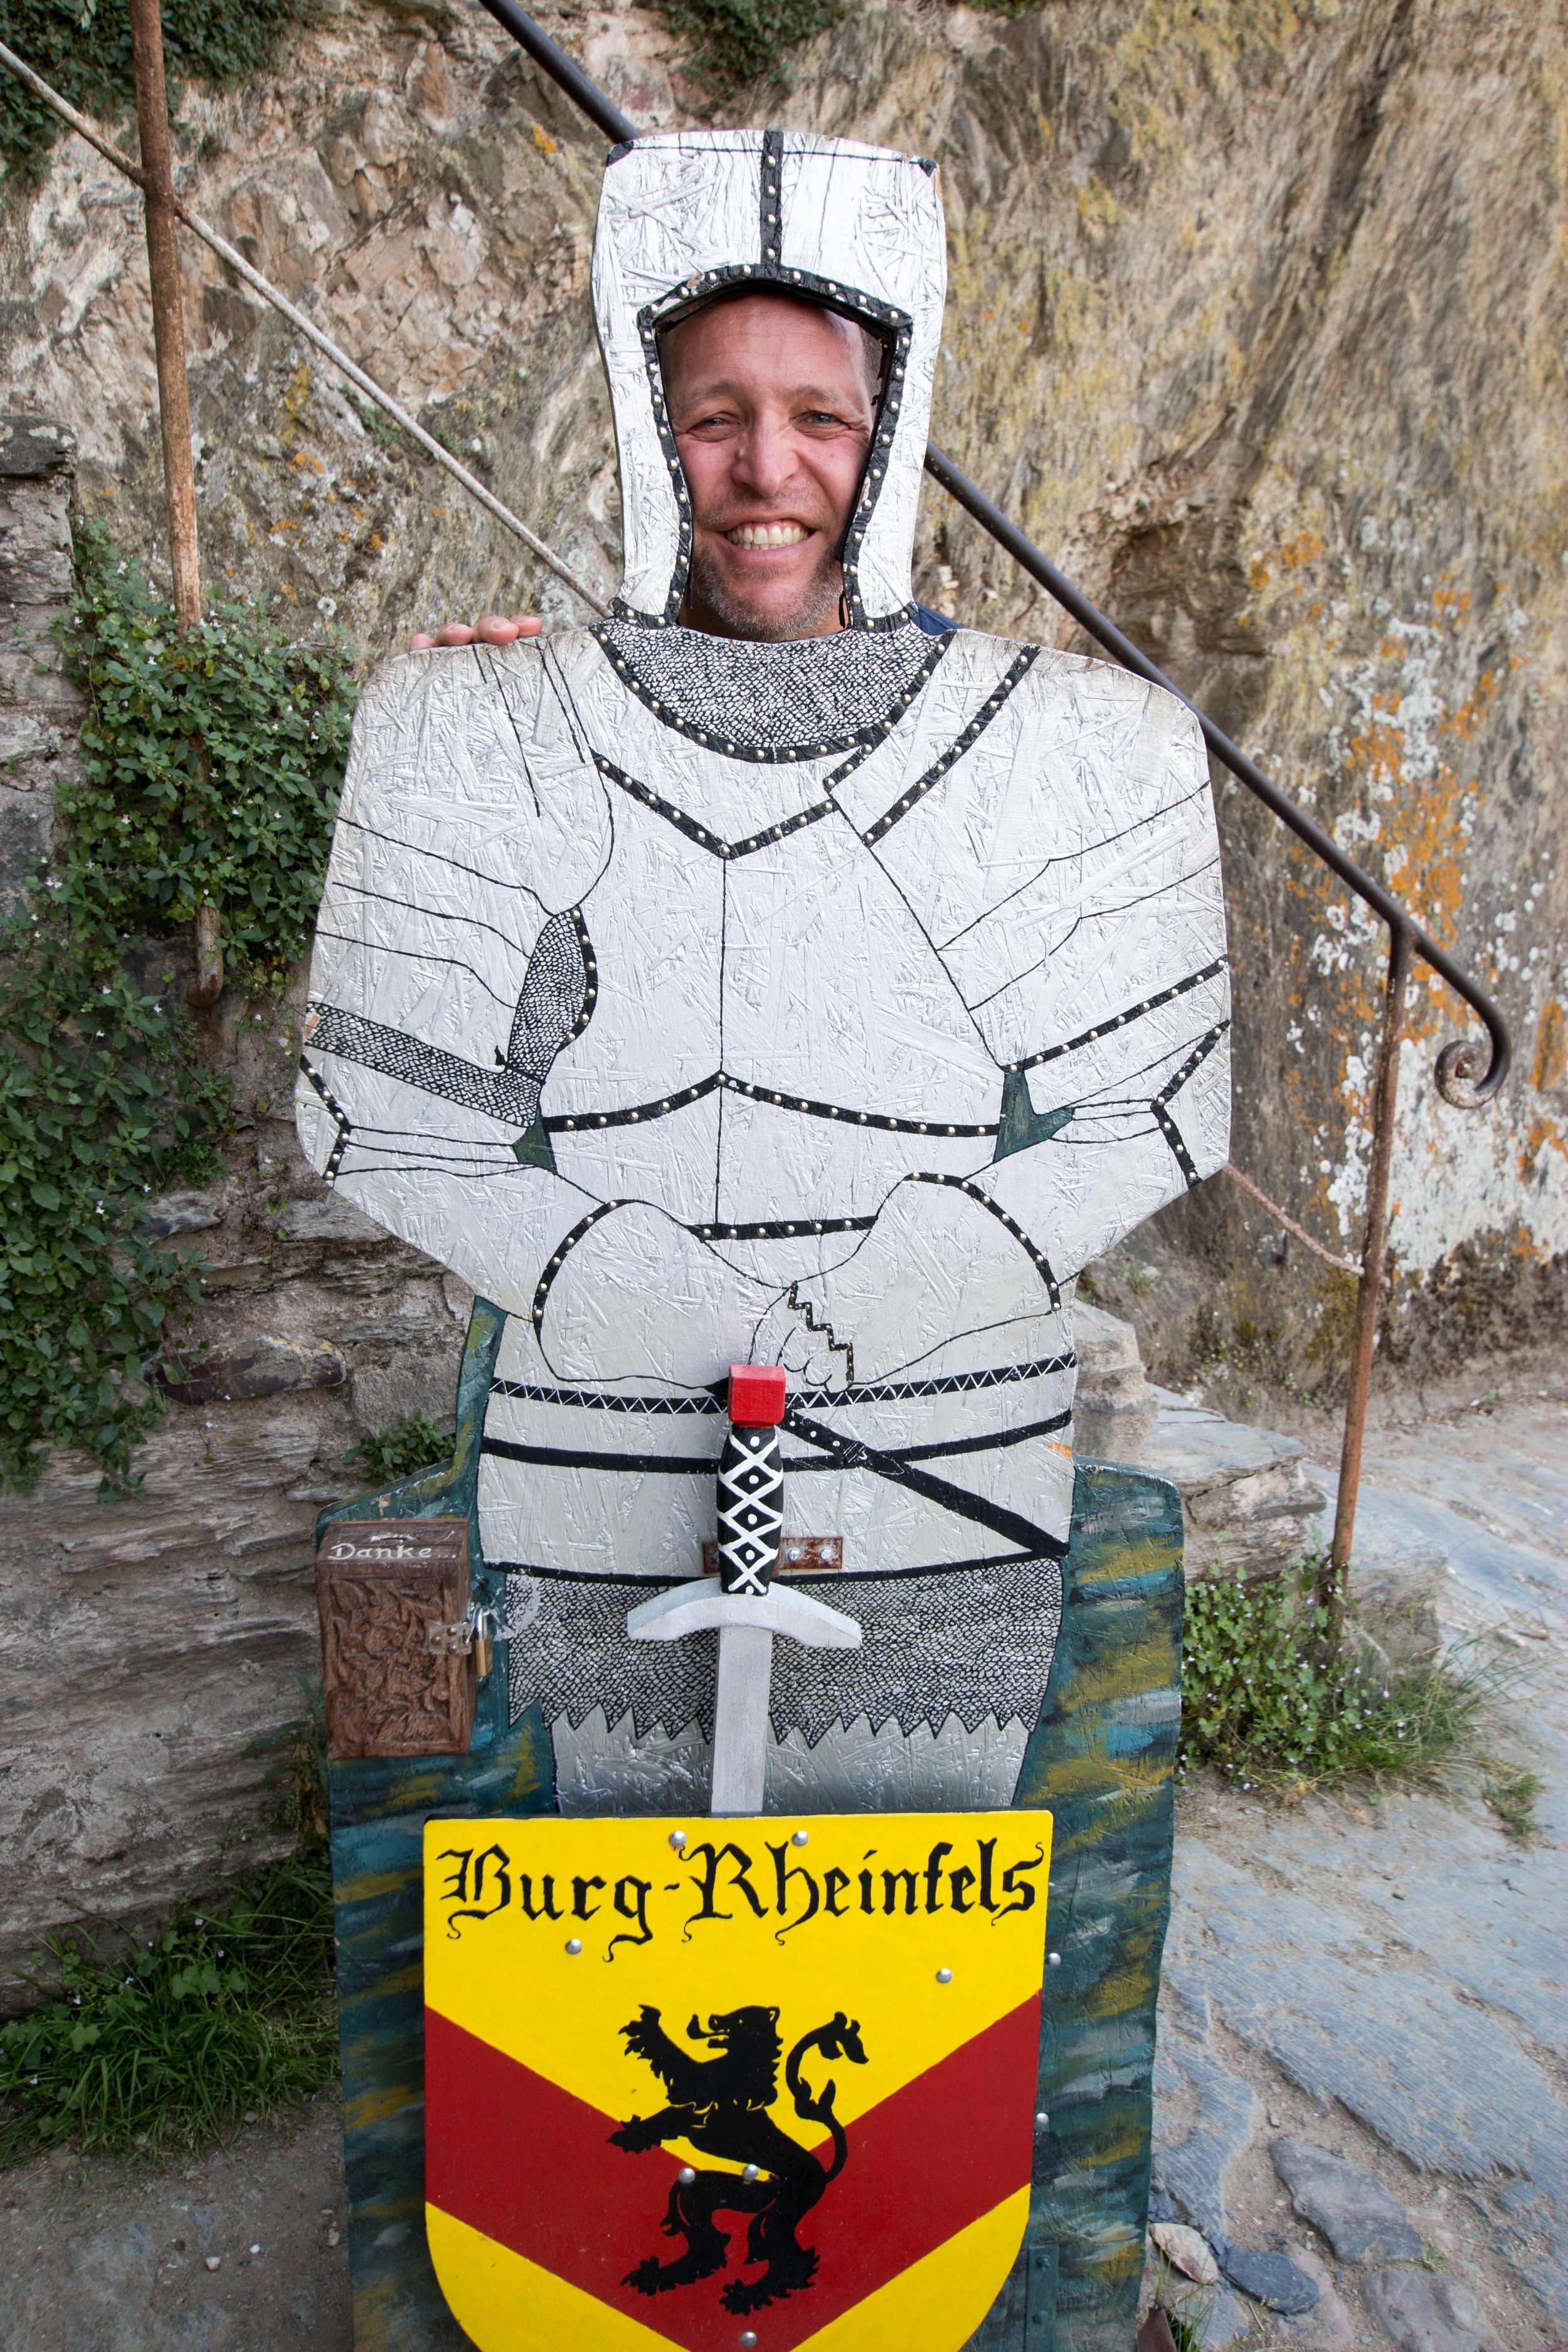 Carston as a knight!